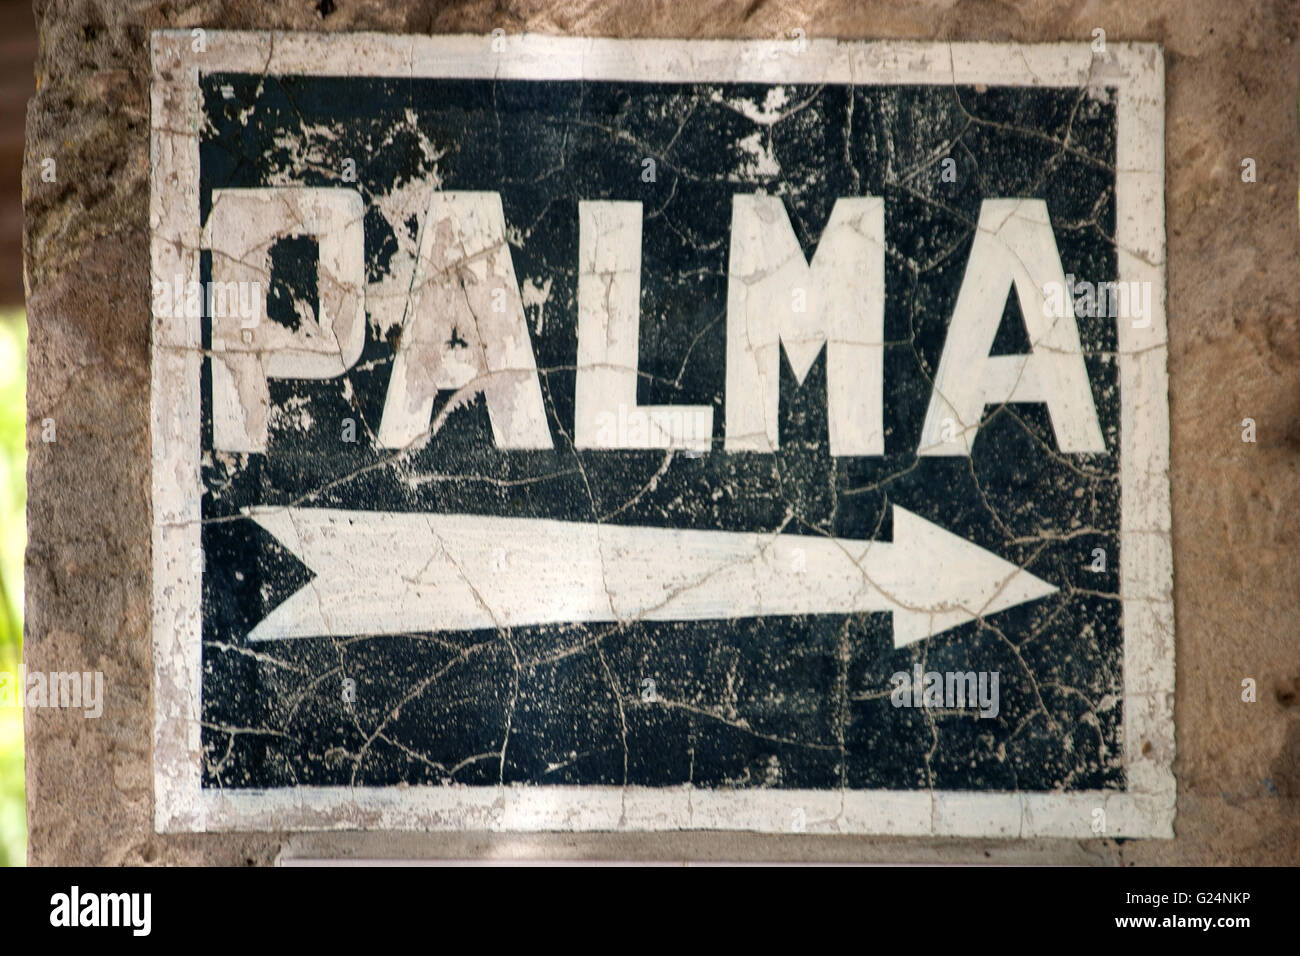 a beautiful picture of a stone indication for the city of Palma, Palma de Mallorca, Palma di Maiorca, summer, tourism, - Stock Image